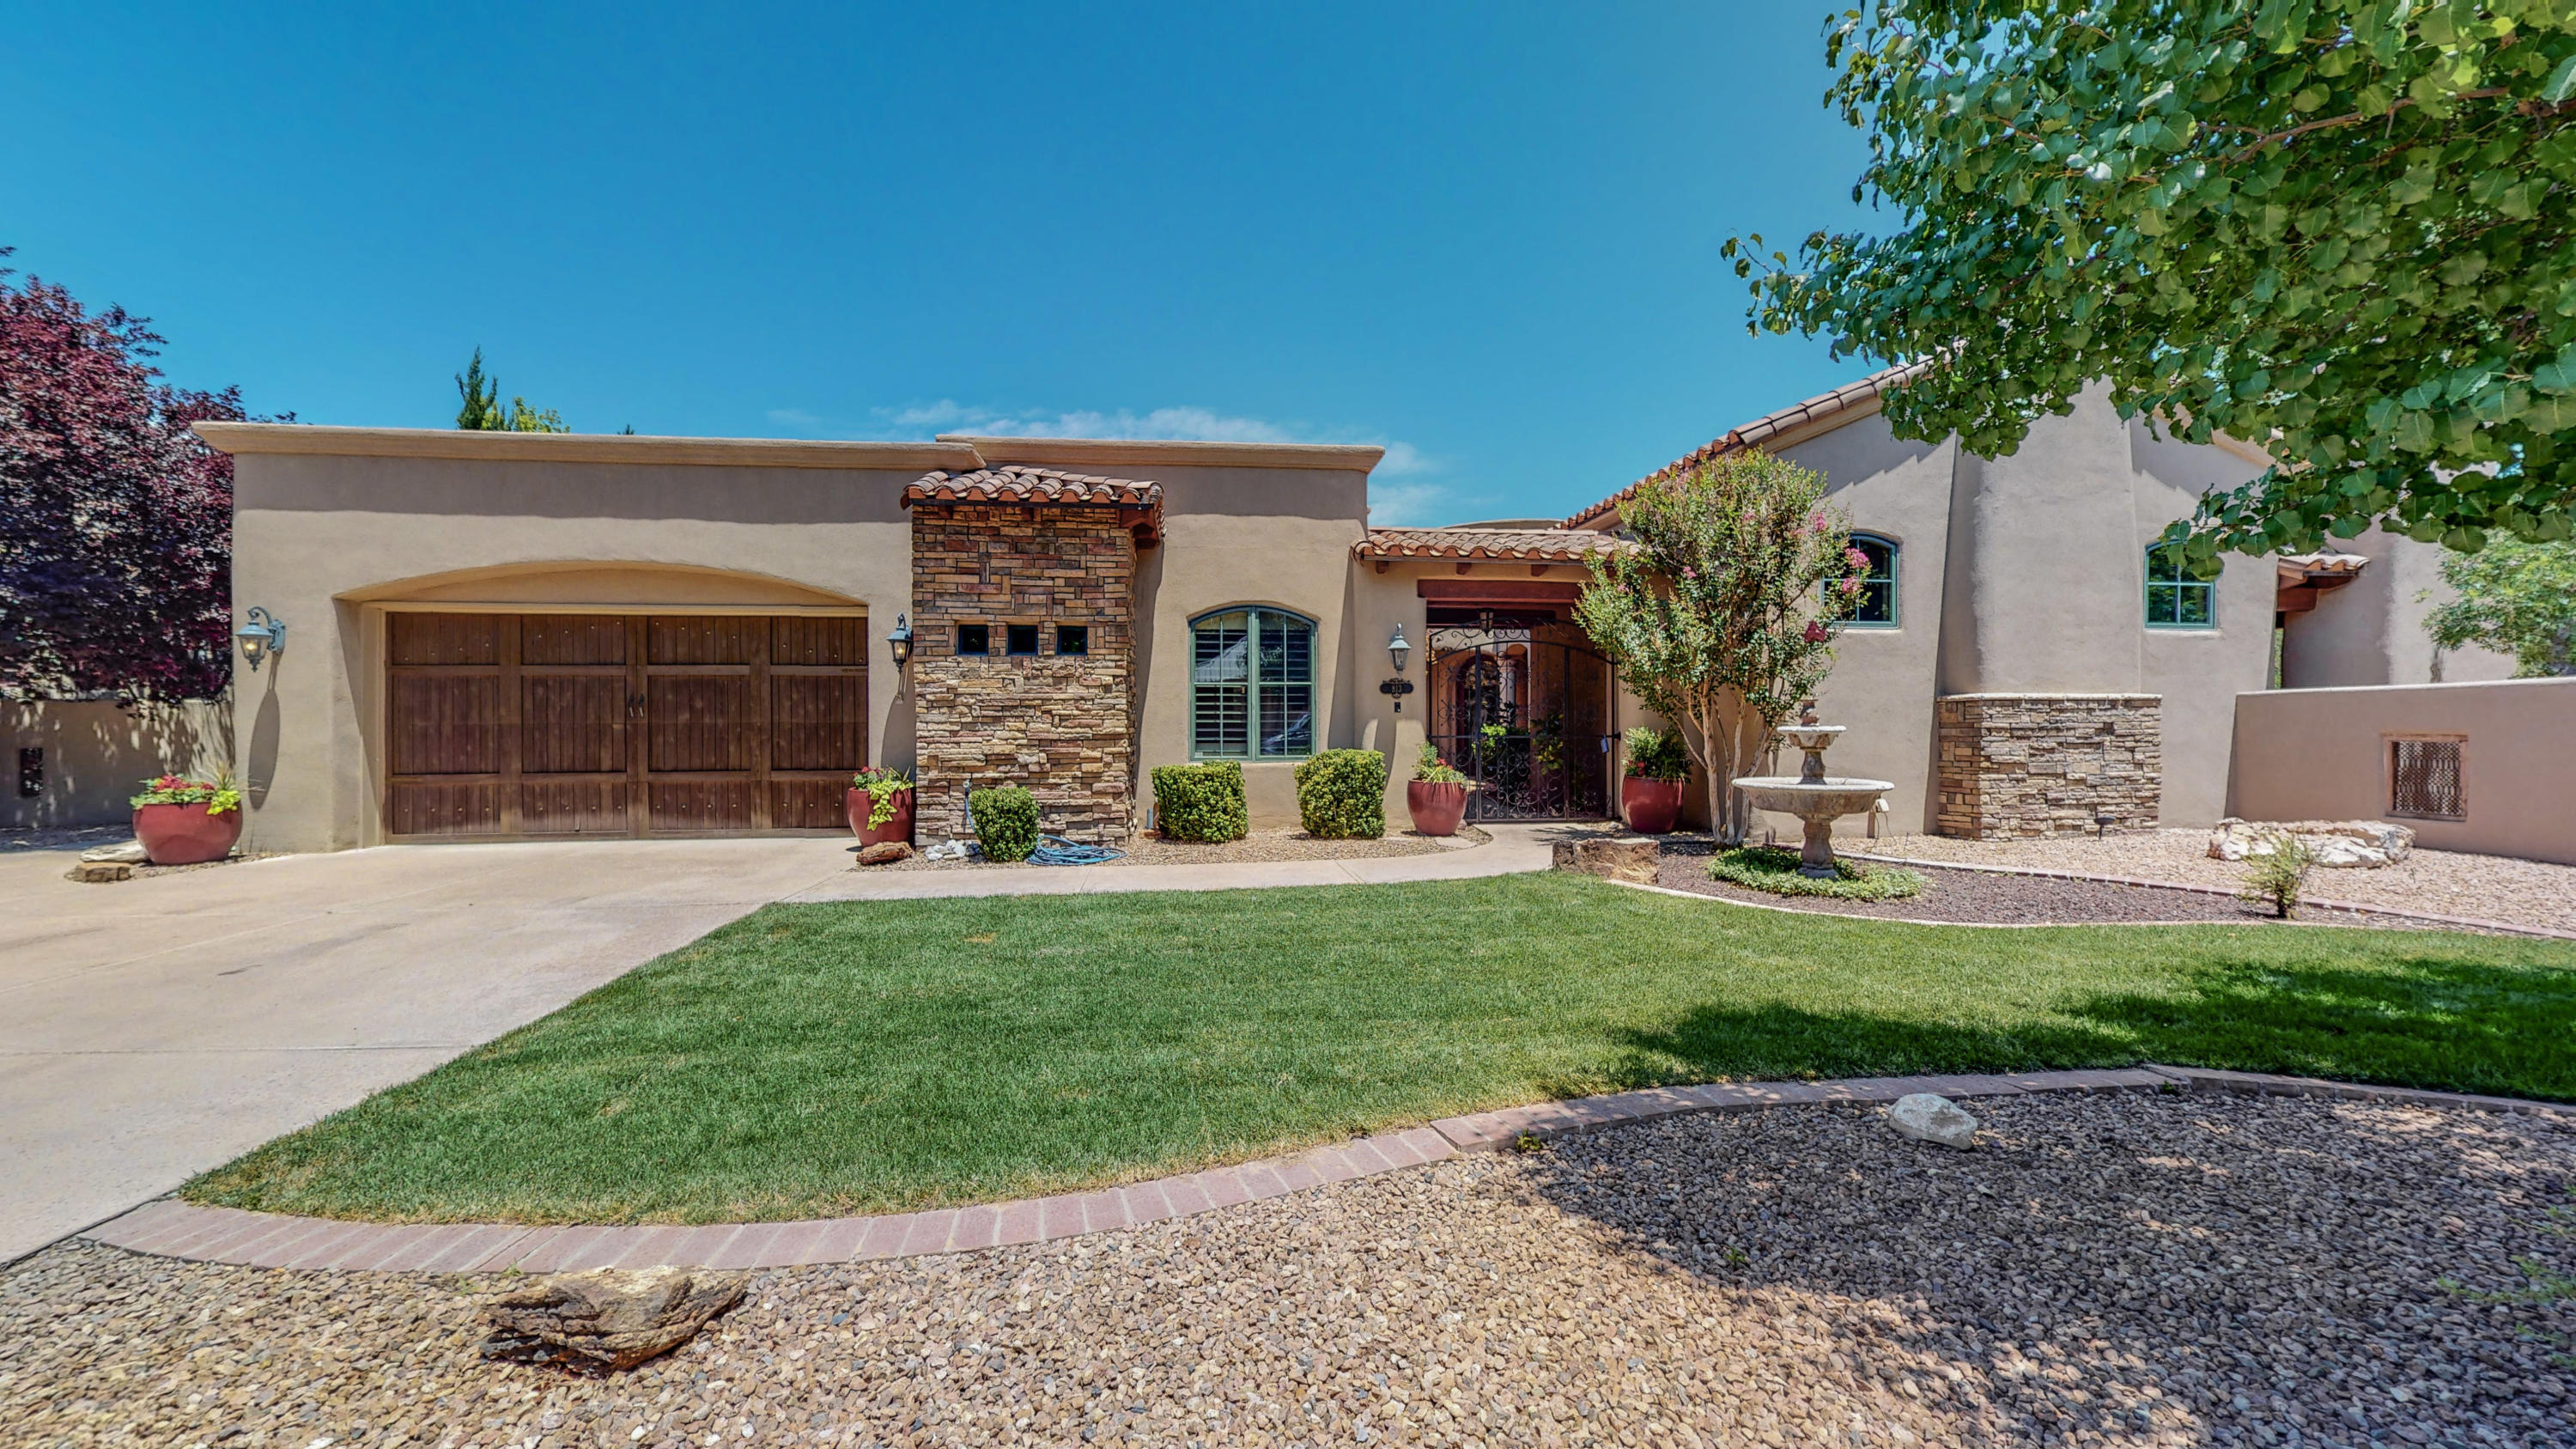 Looking for an elegant North Valley home with easy care landscaping? Come see this one level 3309 sf Tuscan home with 3 BR plus  large office, 3.5 baths, 2 indoor  fireplaces, beamed vaulted ceilings, surround sound & Venetian plaster walls. Hardwood & tile floors. Owner's suite has exercise room/extra office / nursery , large closet, huge shower, fireplace and direct access to 2 patios. Another ensuite bedroom could be a second master.  Bedroom 3 also has its own bath . Office has built-in bookshelves.  Spacious kitchen with Thermador 5 burner cooktop, pantry and large granite island  opens to adjacent dining and living rooms. Beautiful wrought iron gated entry , 2 additional courtyards with fireplaces & mountain views & grill or wind protected location.  Wonderful indoor/outdoor flow!